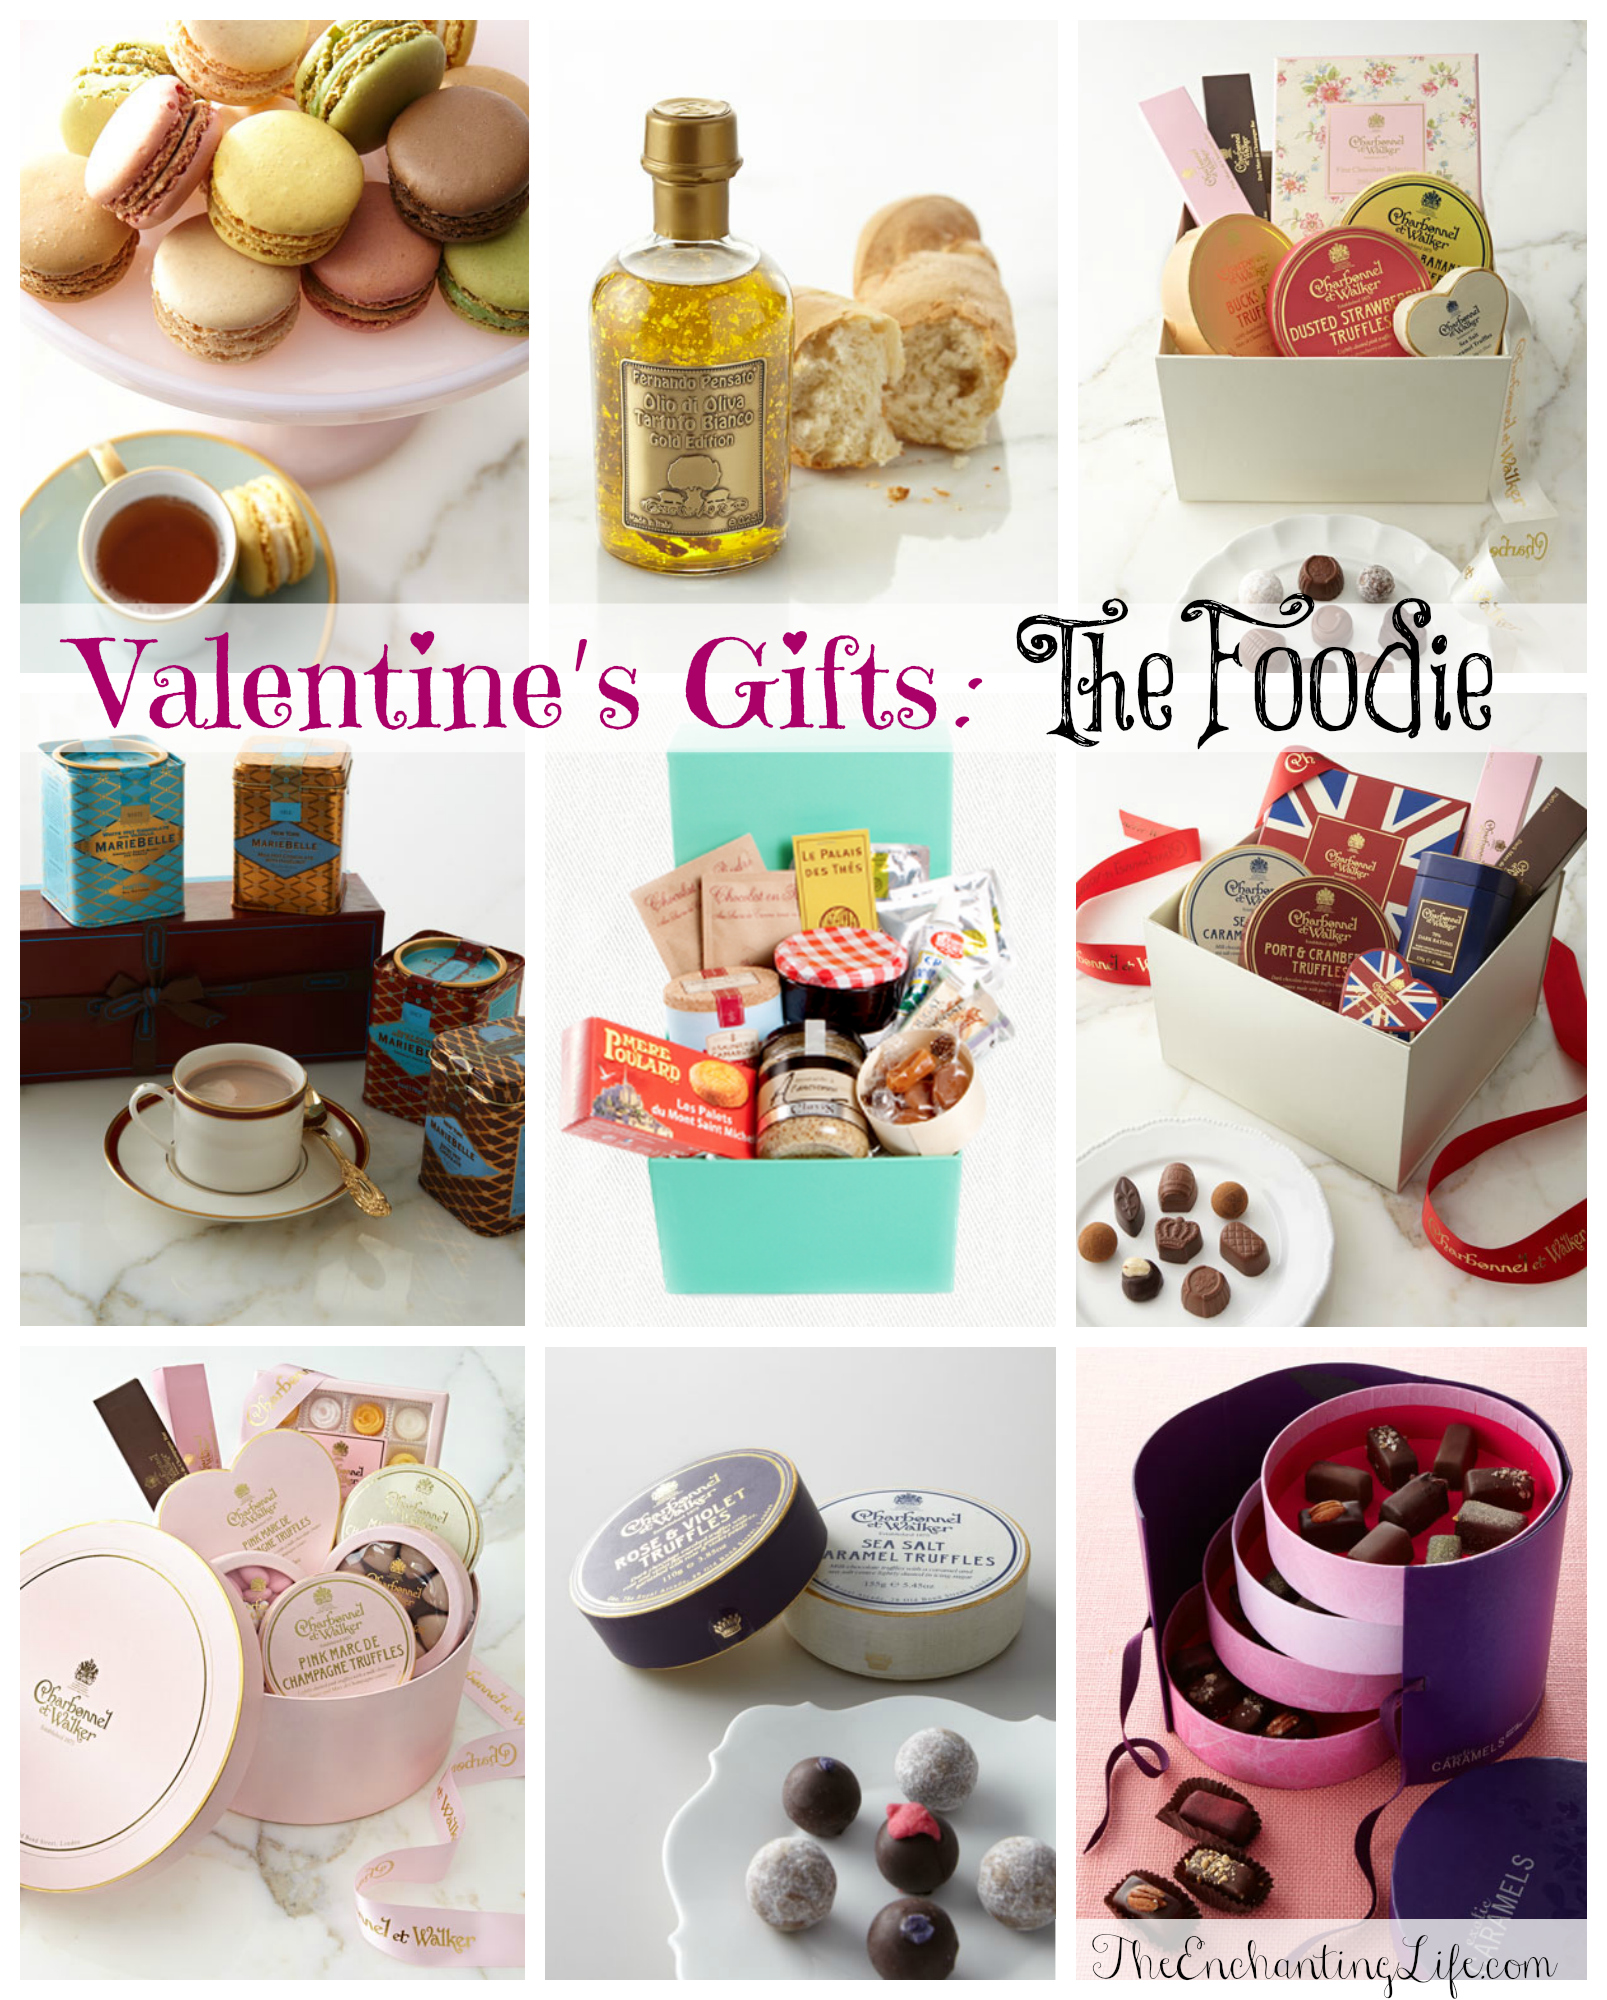 Valentine's Gifts for The Foodie